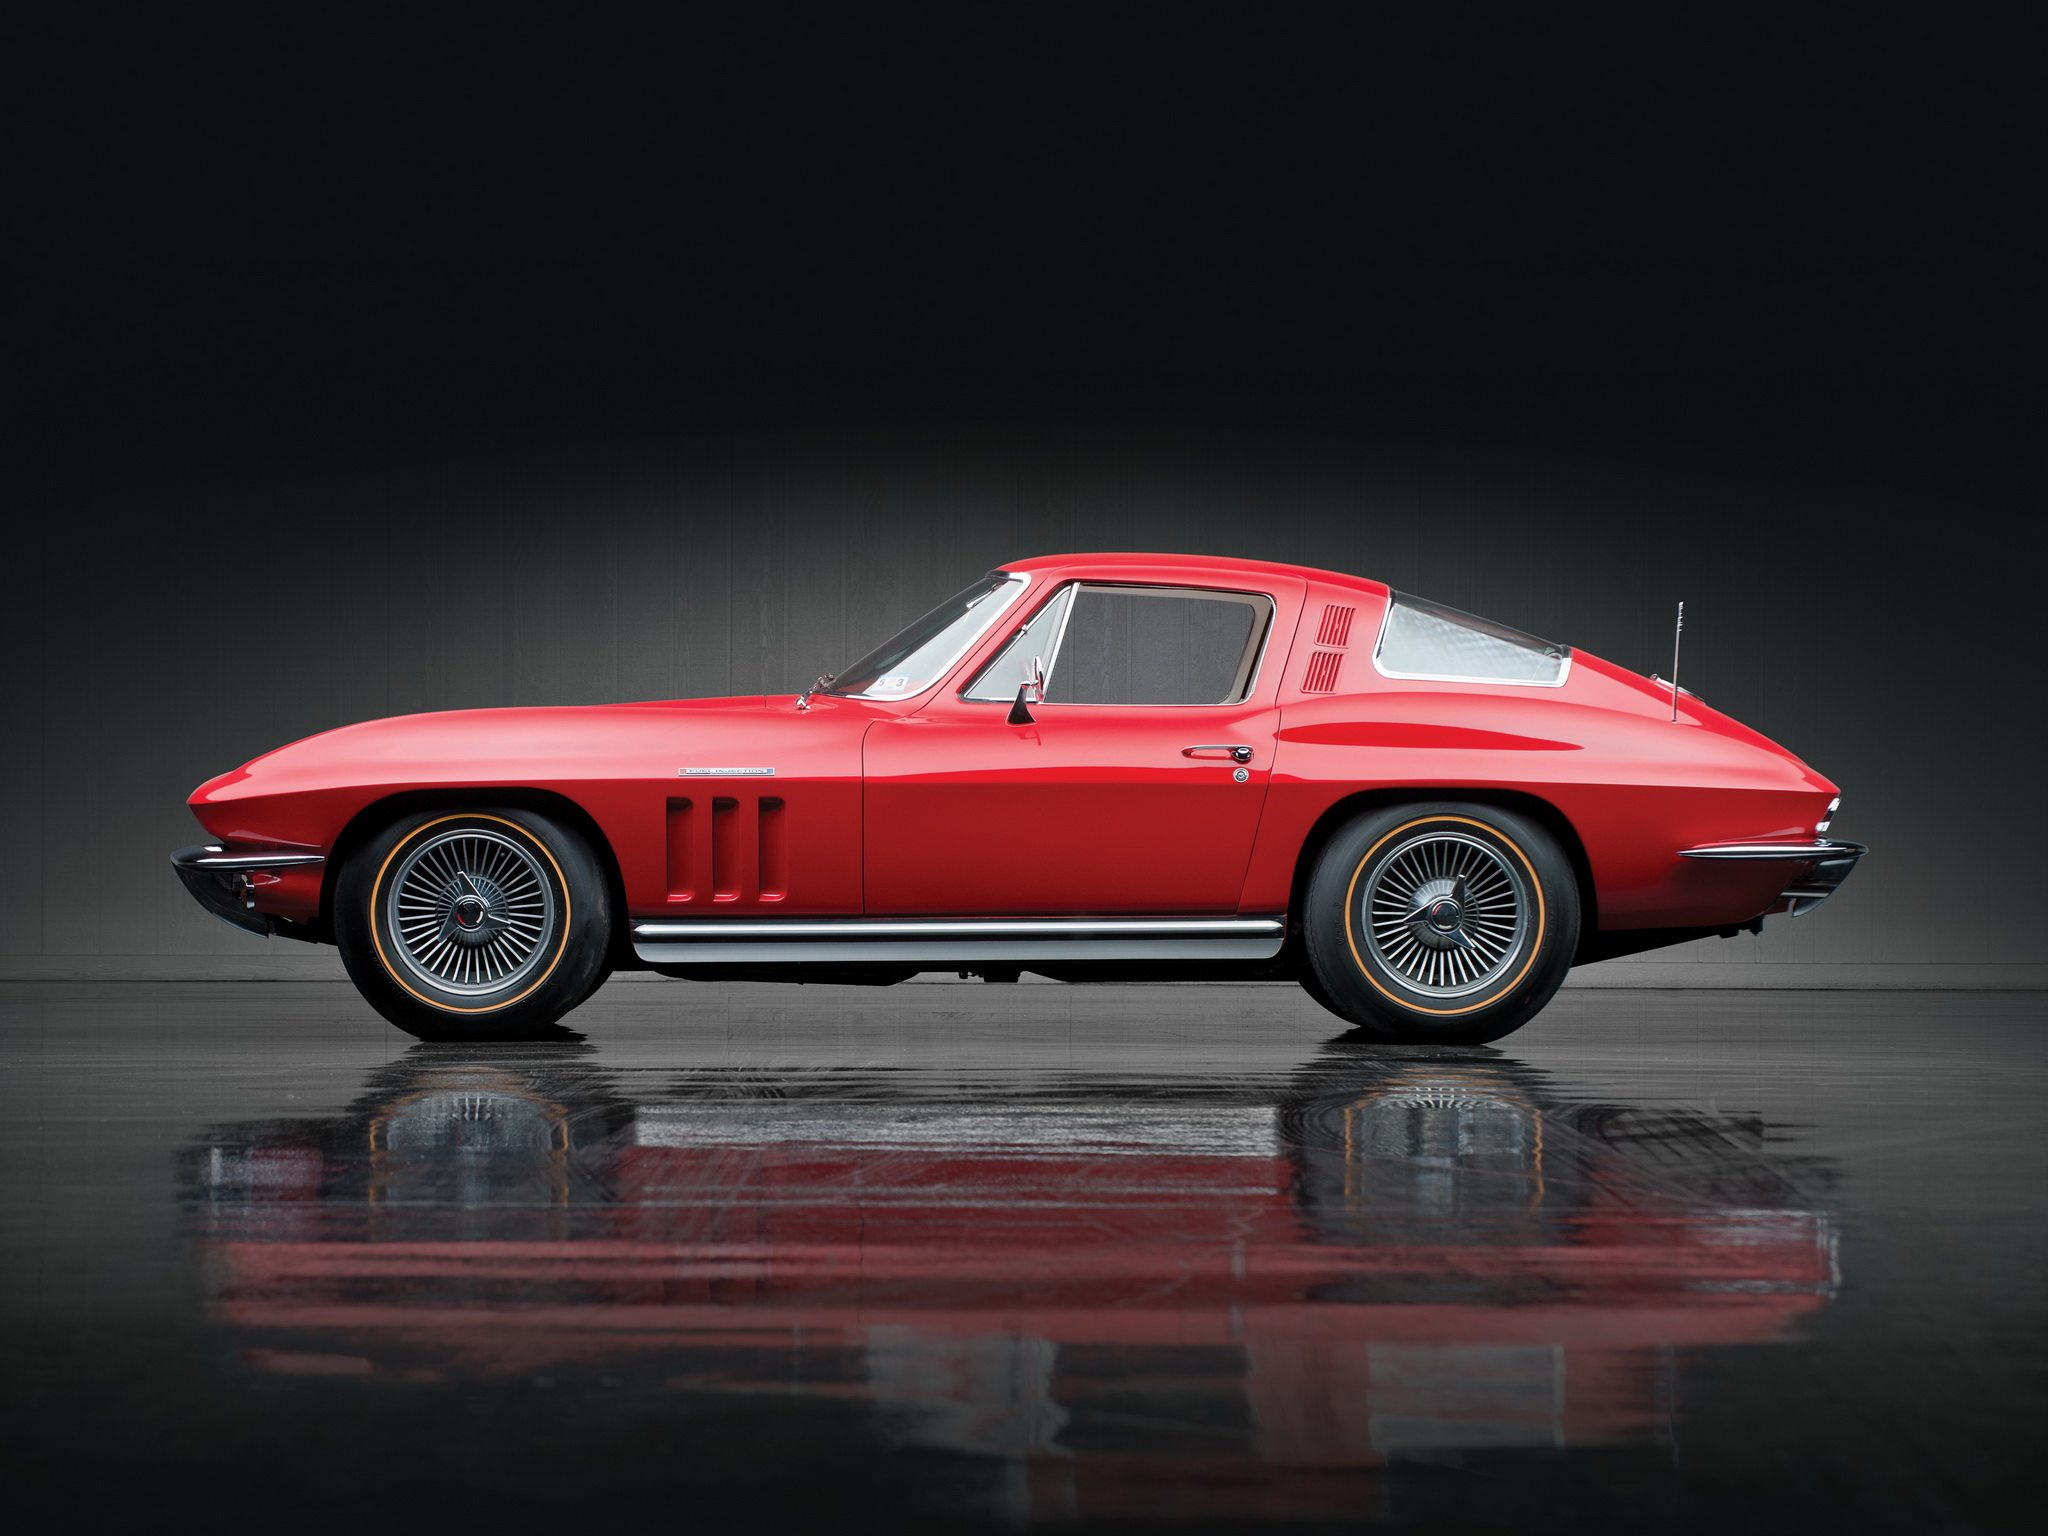 Chevrolet Corvette Sting Ray L Fuel Injection C Supercar Muscle Classic Gh X